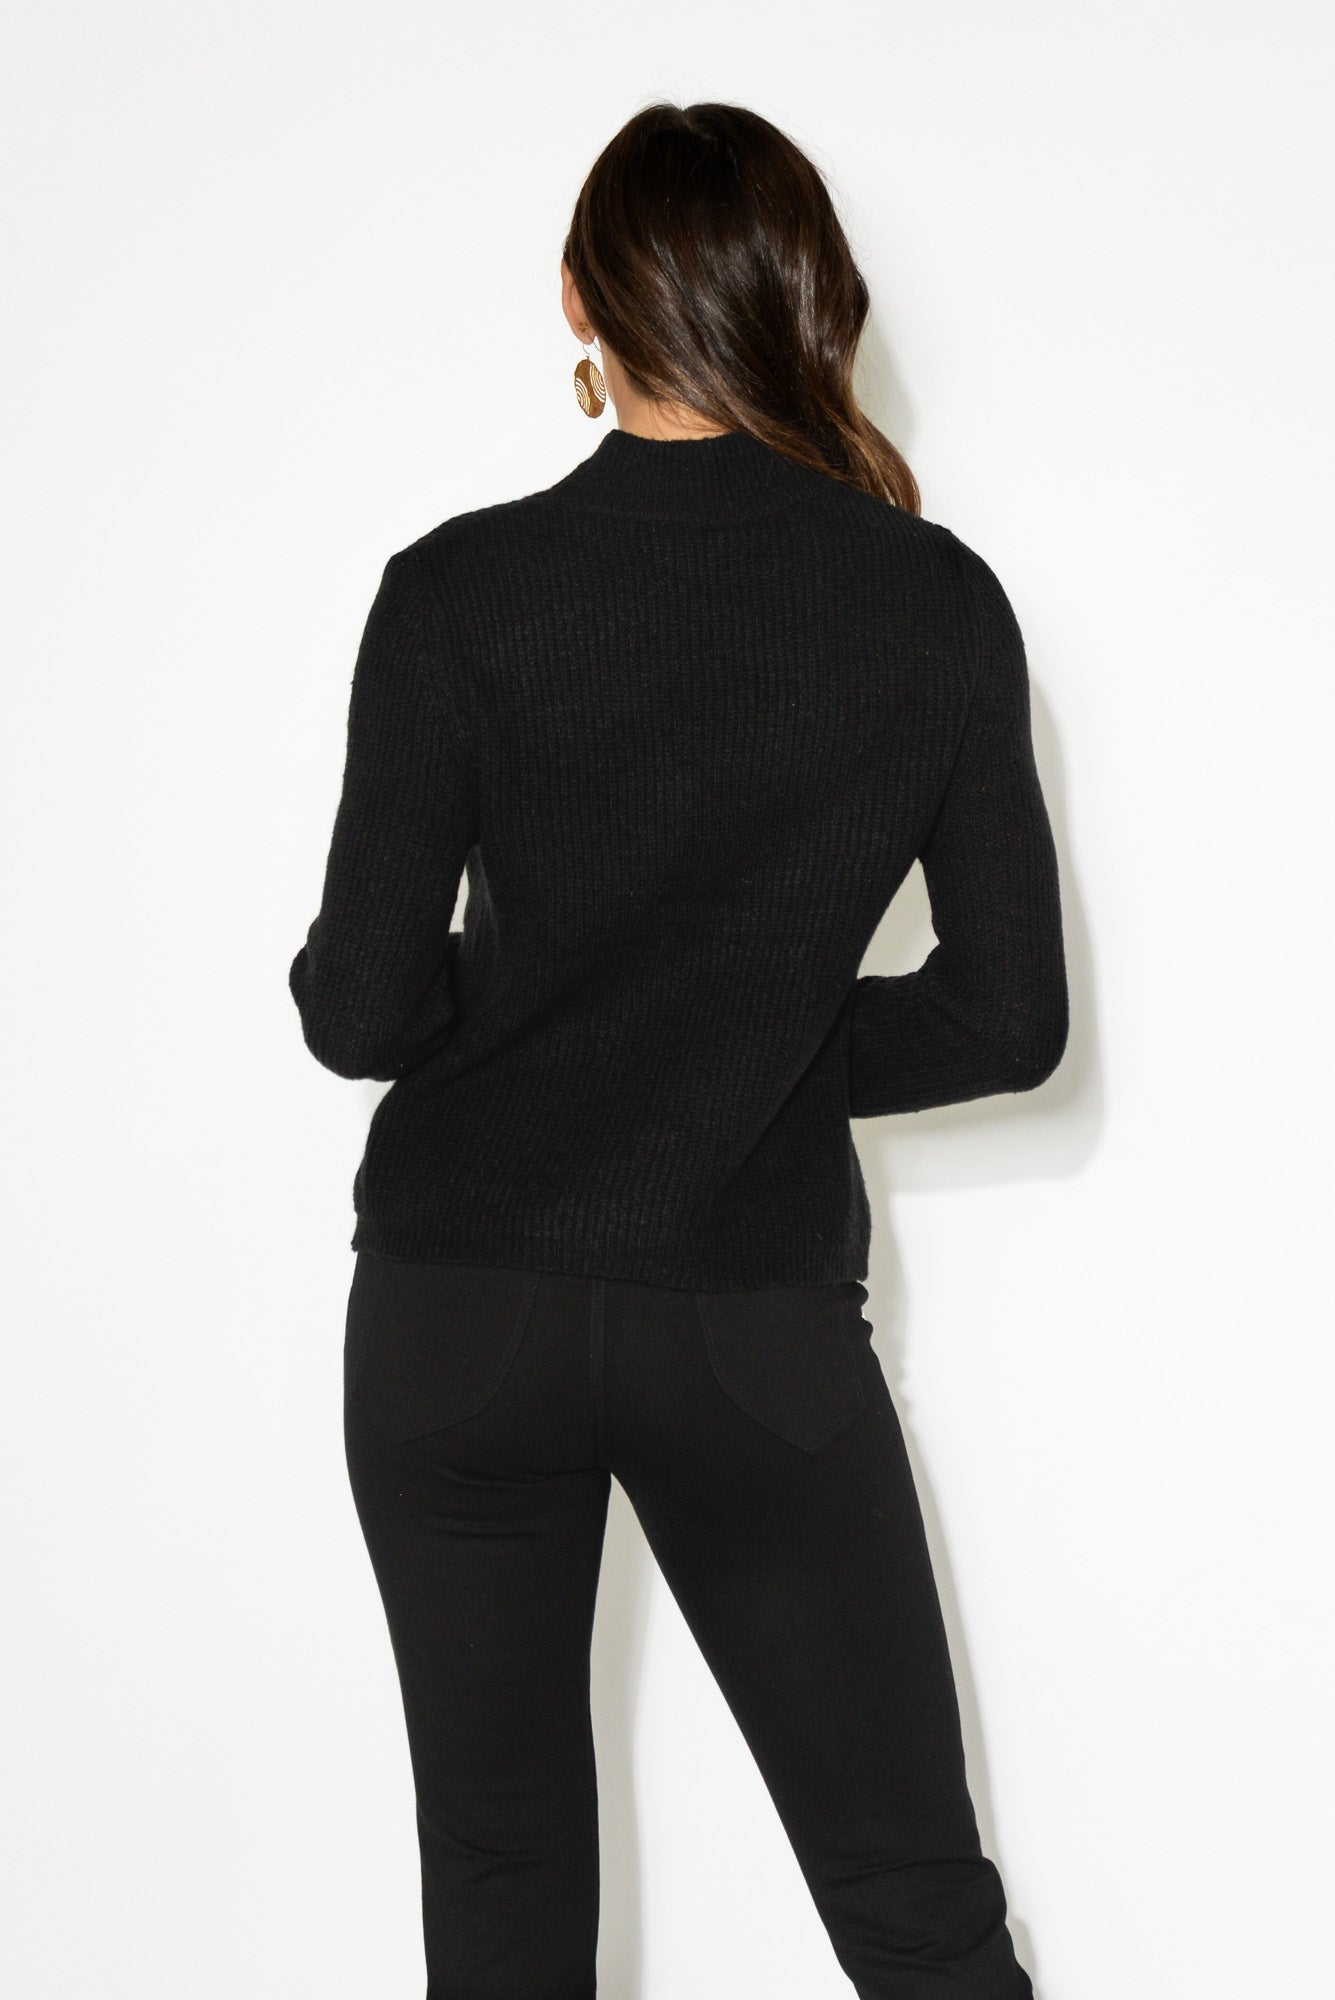 Marty Black Turtleneck Knit Top